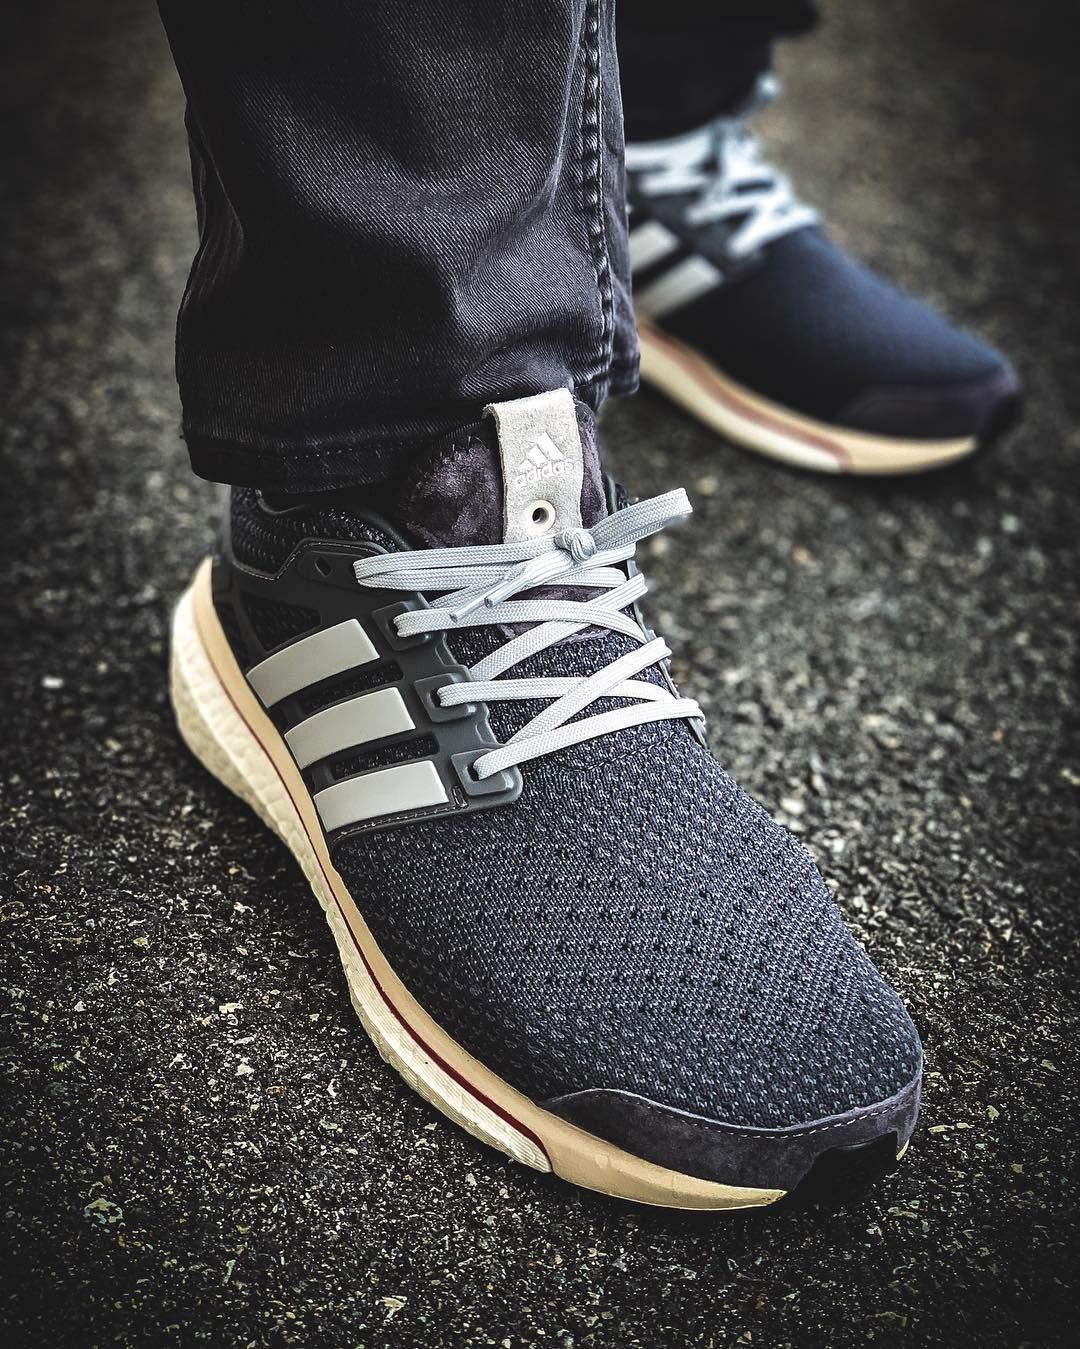 """a9c8af2b49cd1 Boston Sneakerhead on Instagram  """"Today s Kicks Run Through Time   Energy  Boost One of the most comfortable releases from the Energy Boost line."""